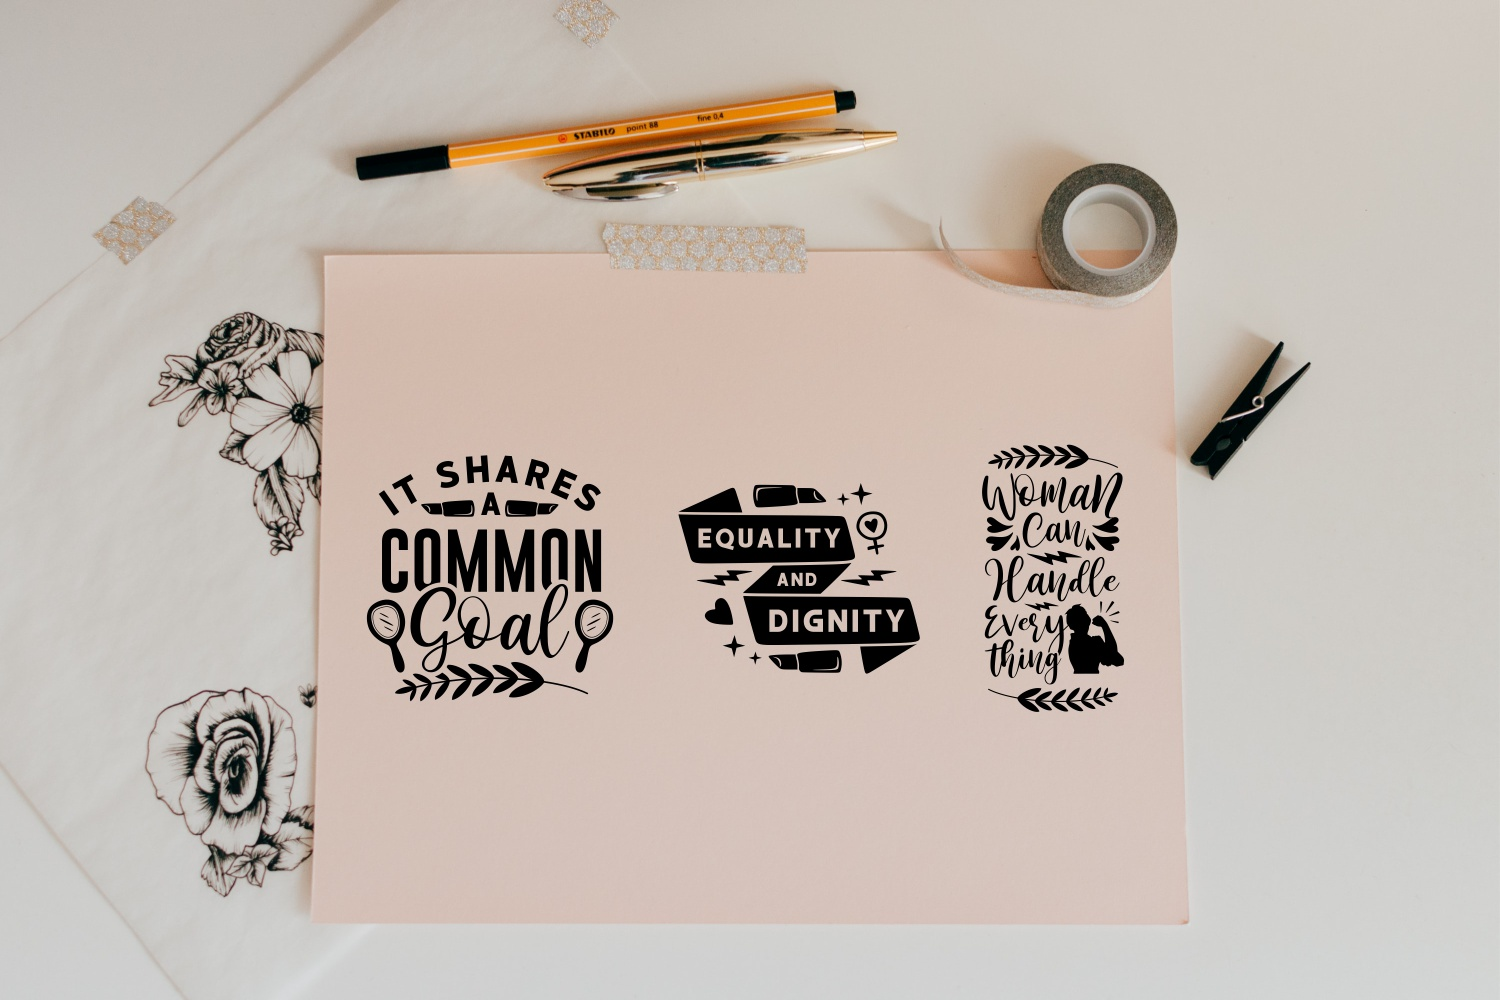 Three motivating phrases with graphic elements on pastel colored paper.